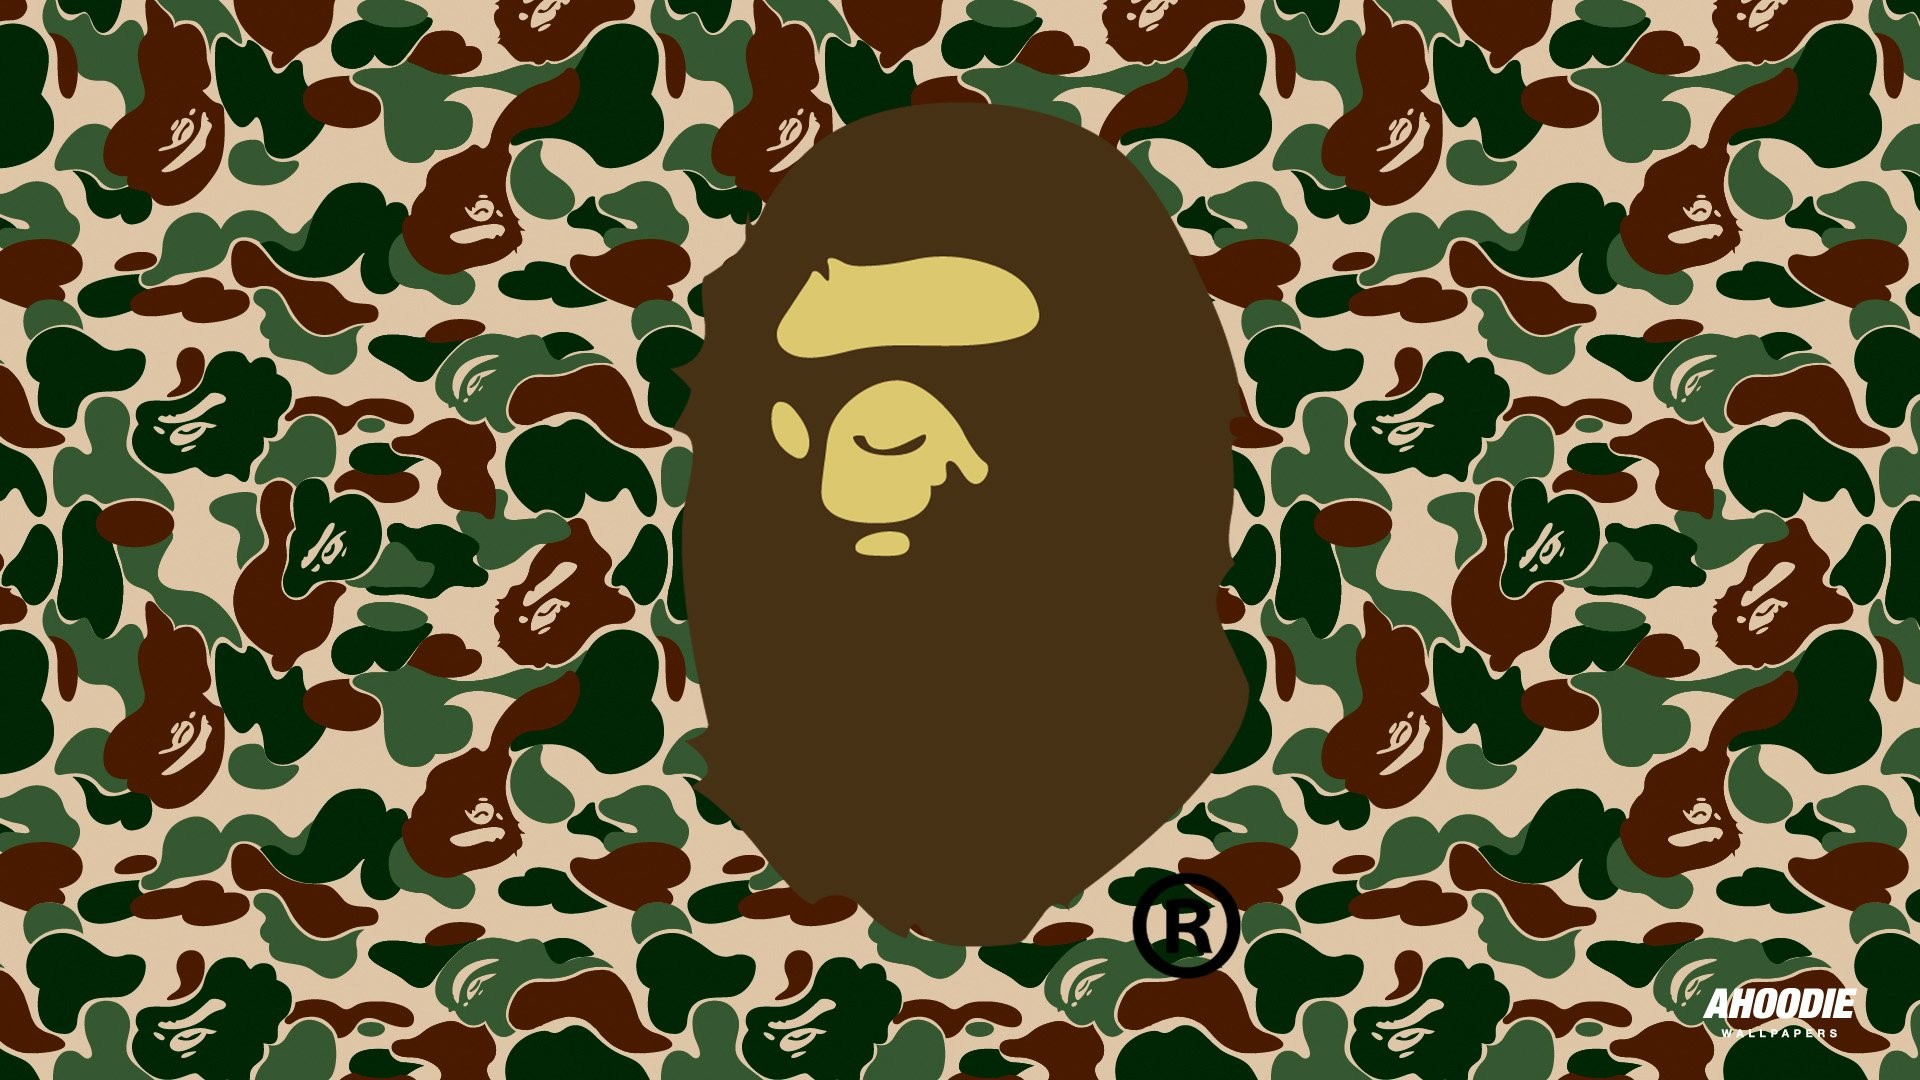 bape iphone wallpaper bape shark wallpaper 49 images 10223